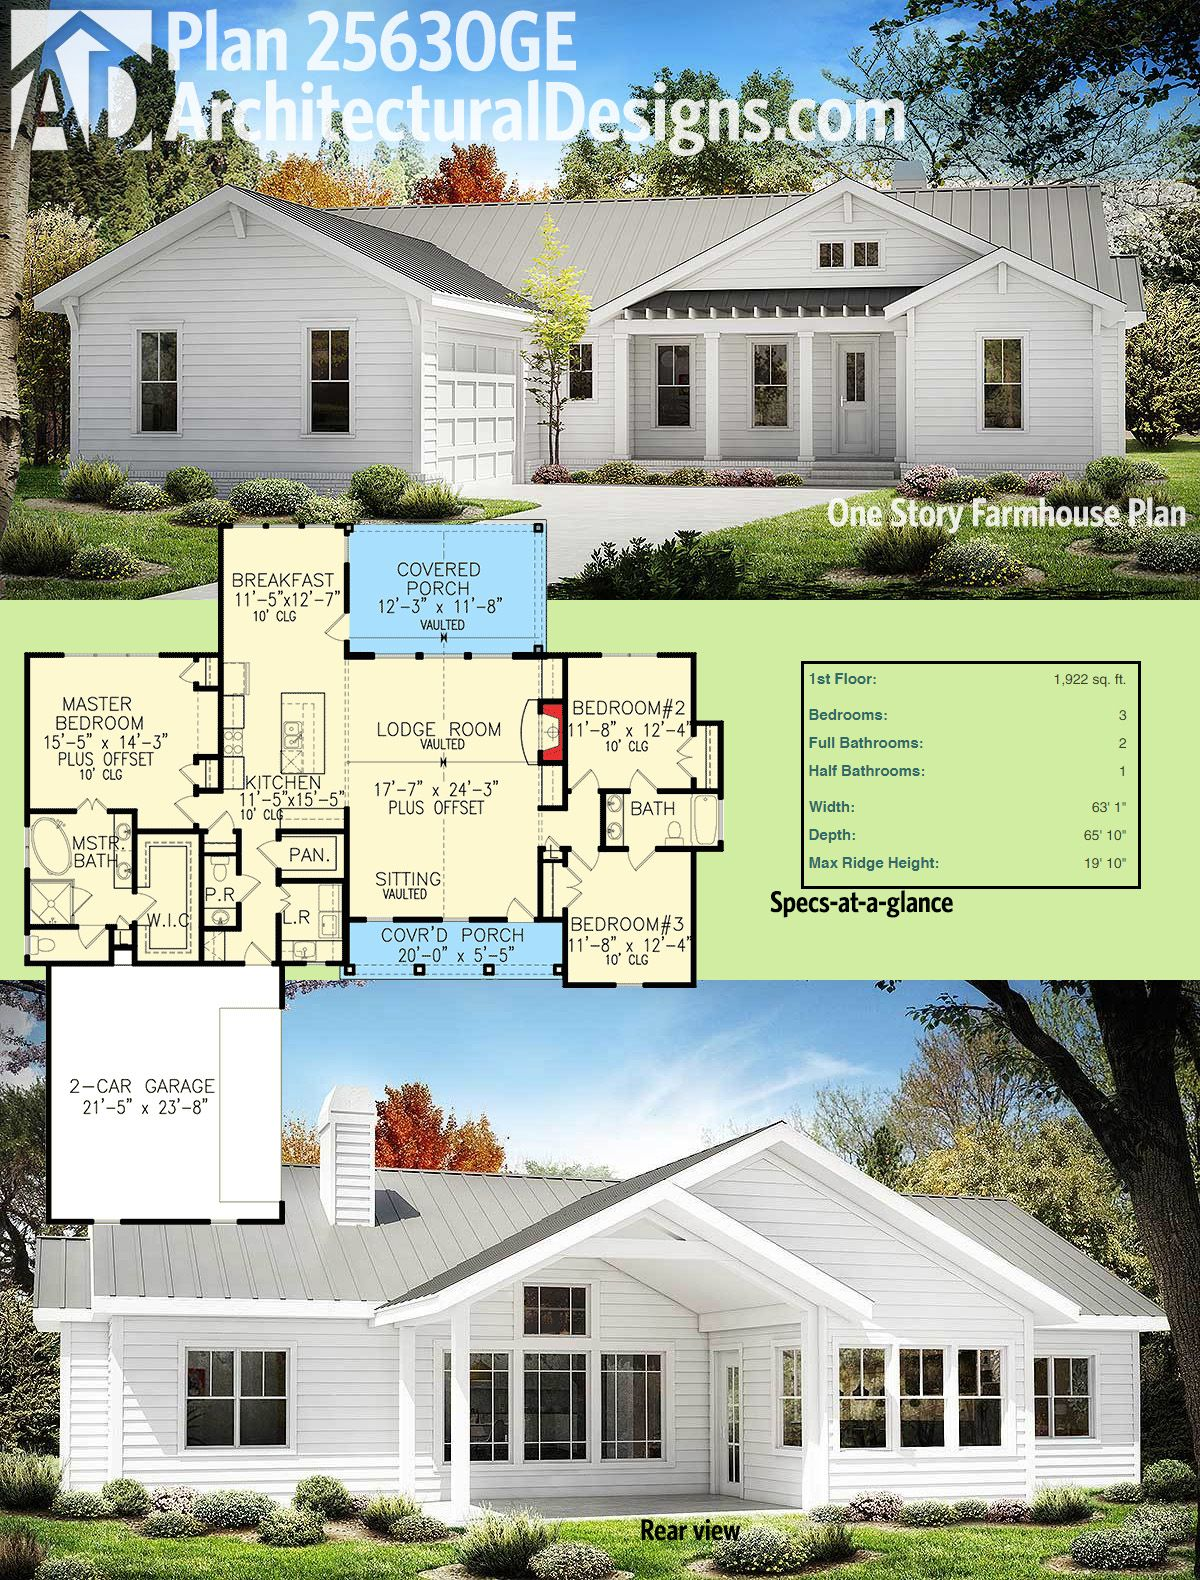 Plan 25630ge one story farmhouse plan farmhouse plans for 1 story farmhouse floor plans